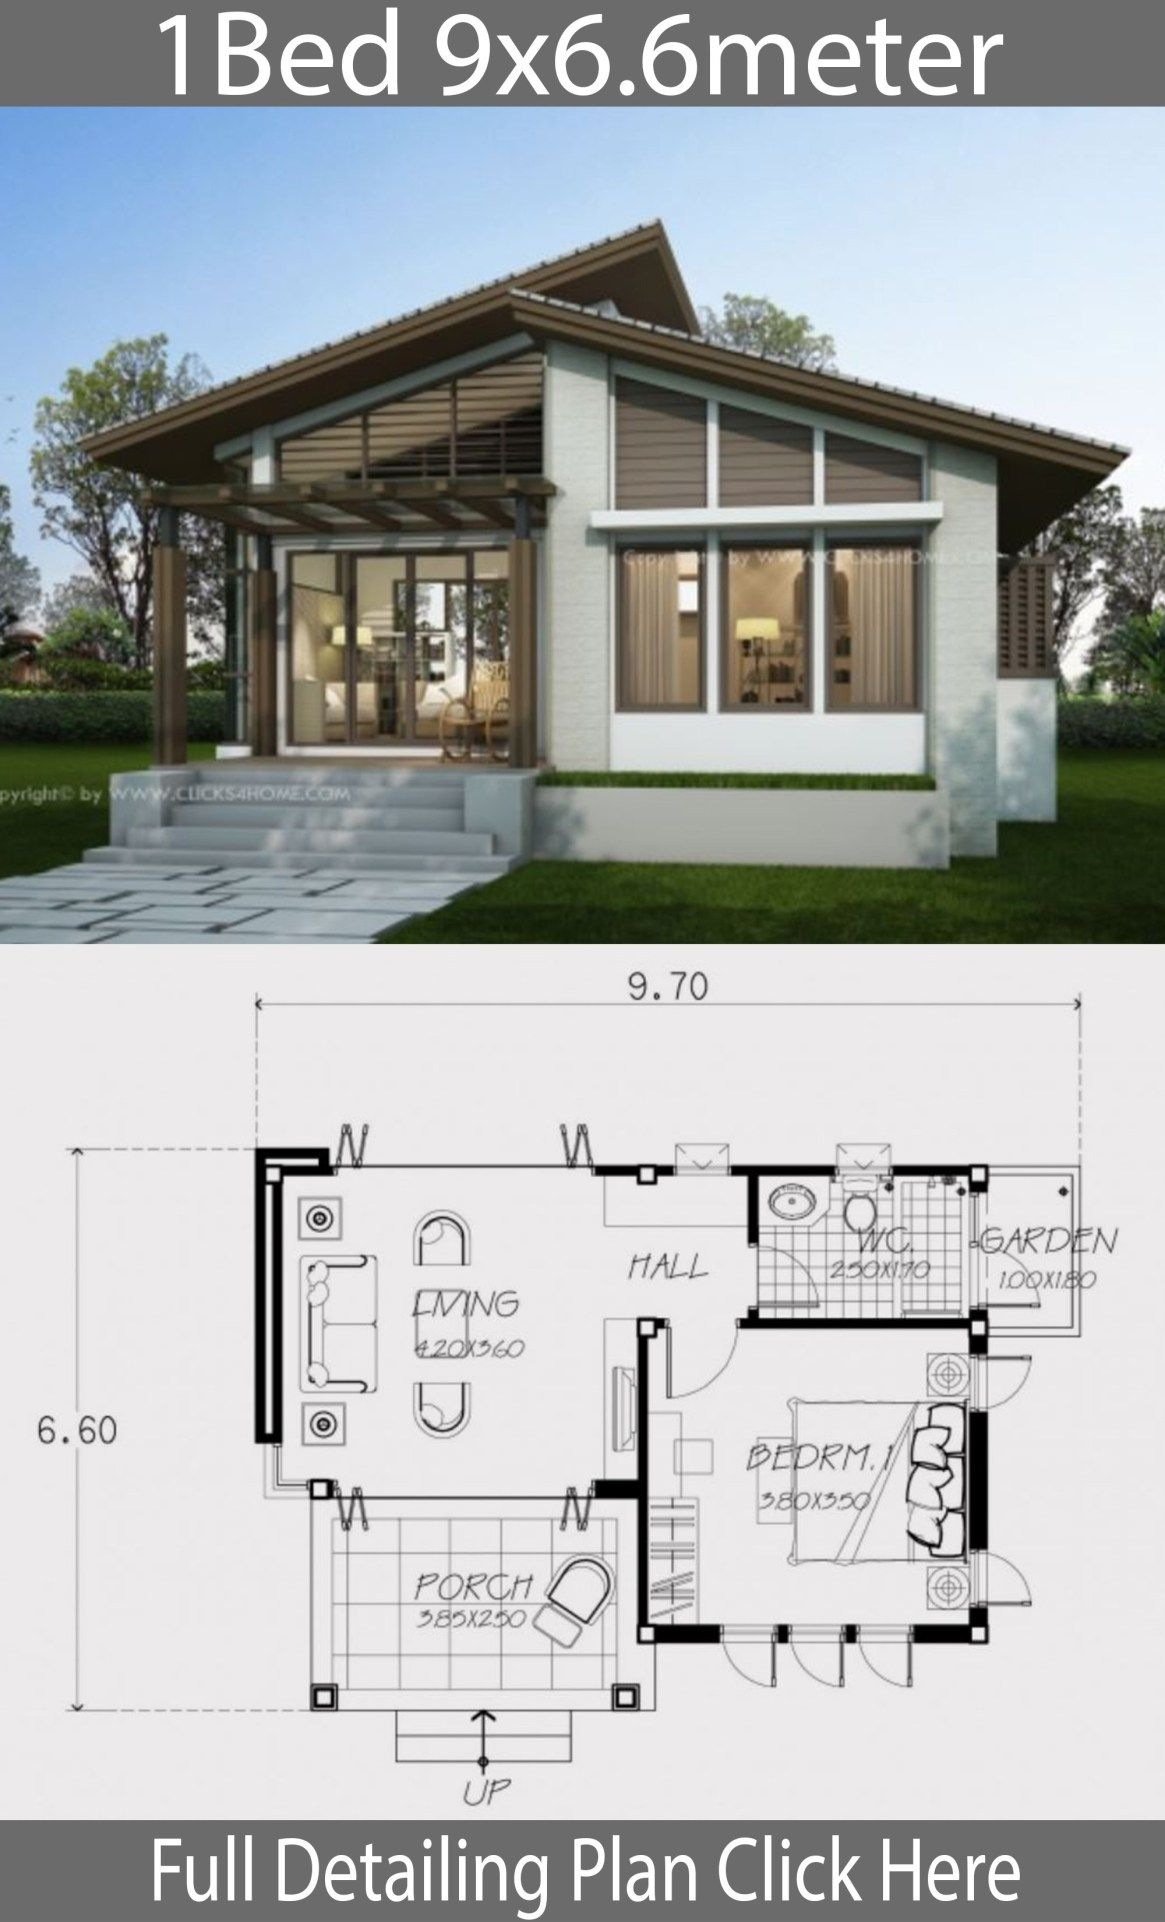 Small Home Design Plan 9x6 6m With One Bedroom Bungalow House